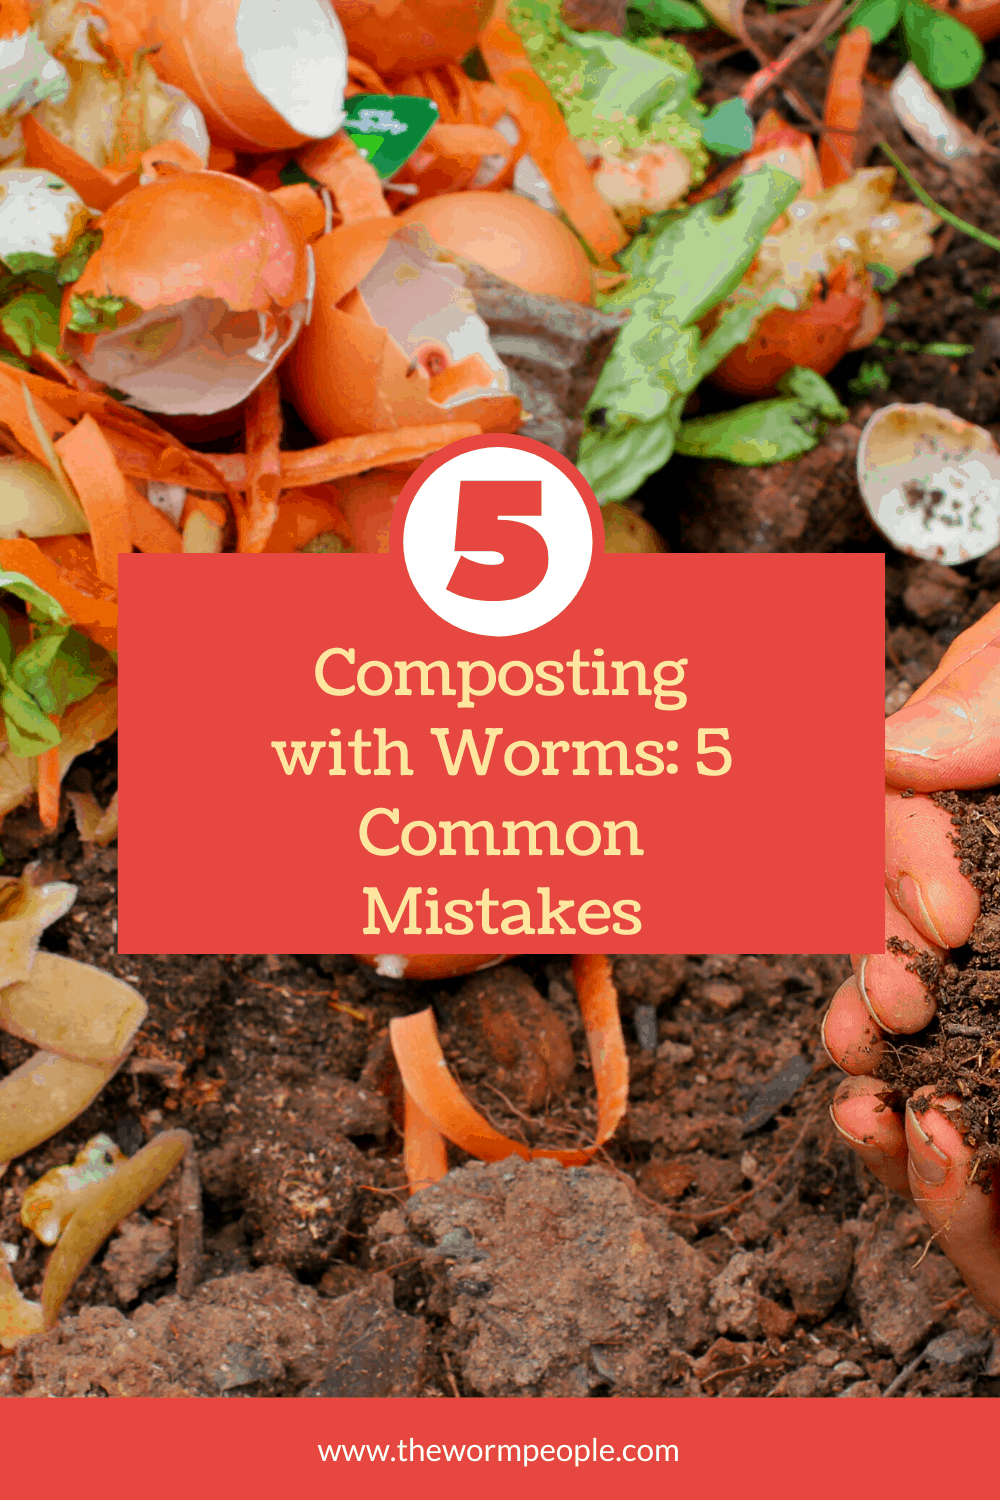 Composting with Worms: 5 Common Mistakes